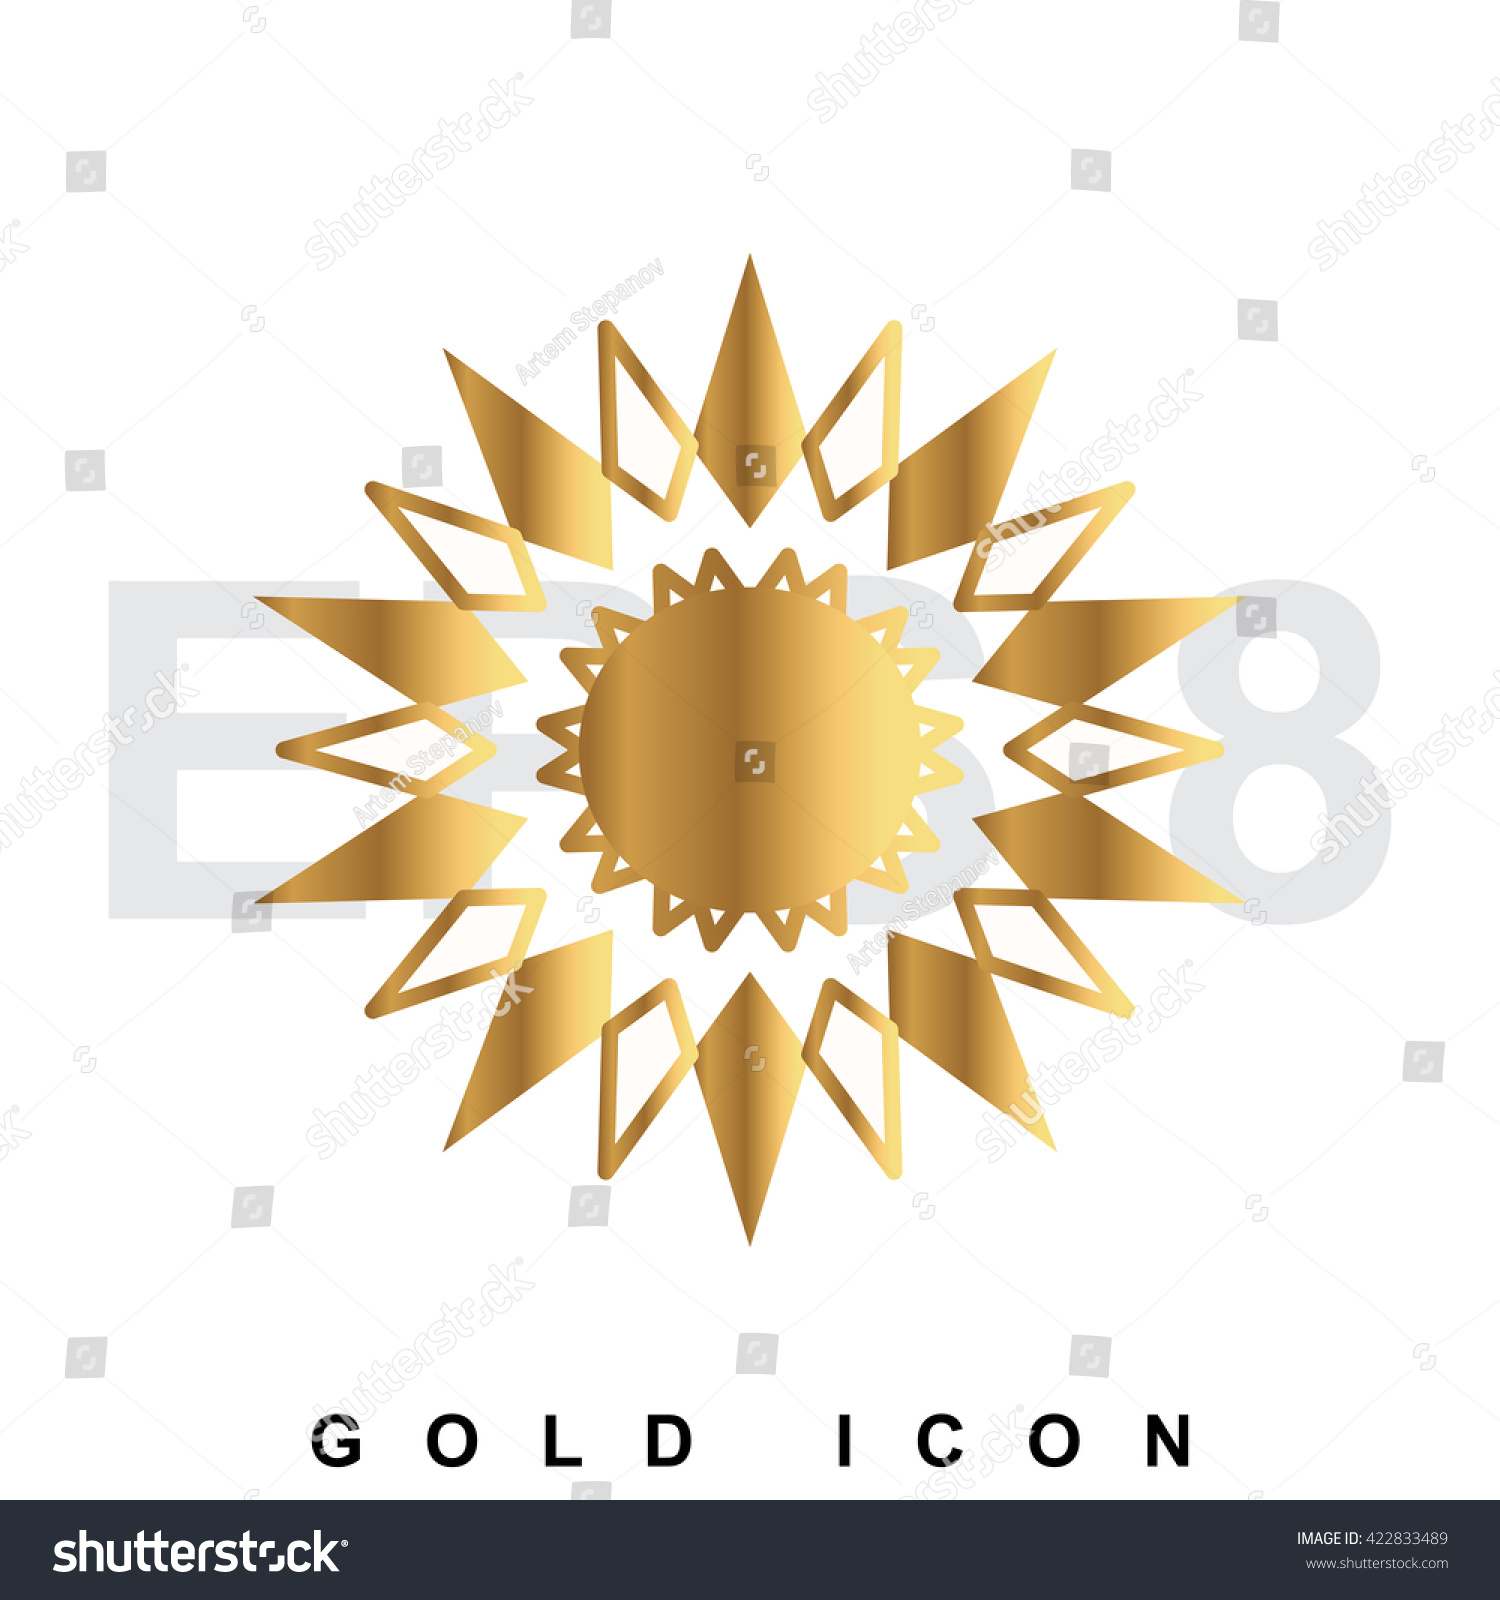 Golden Sun Rays Drawing Star Burst Stock Vector Royalty Free 422833489